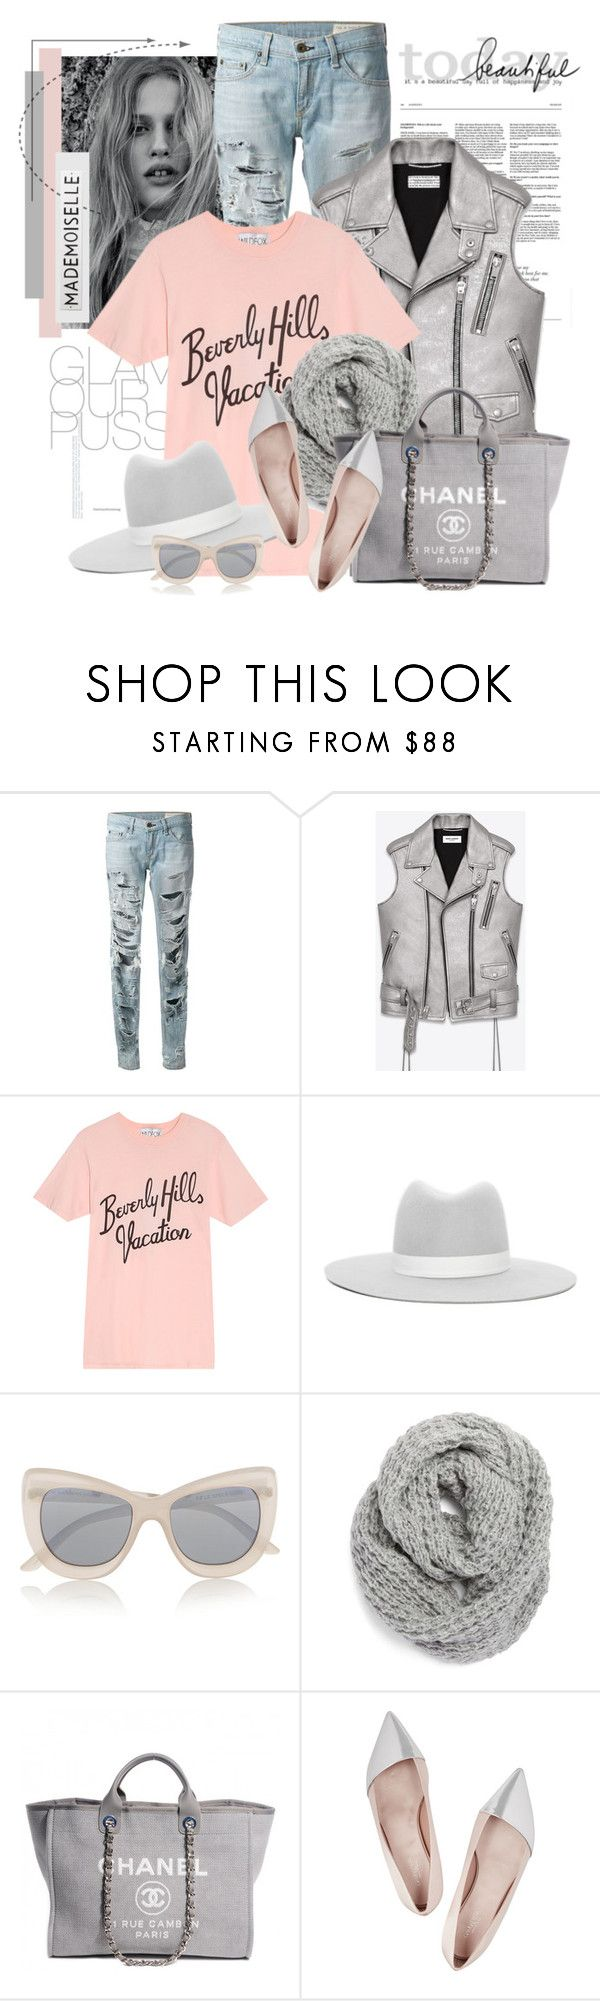 """Untitled #2440"" by bellerodrigues ❤ liked on Polyvore featuring rag & bone, Yves Saint Laurent, Wildfox, Janessa Leone, Le Specs, Halogen, Chanel, Giambattista Valli, Rosanna and women's clothing"